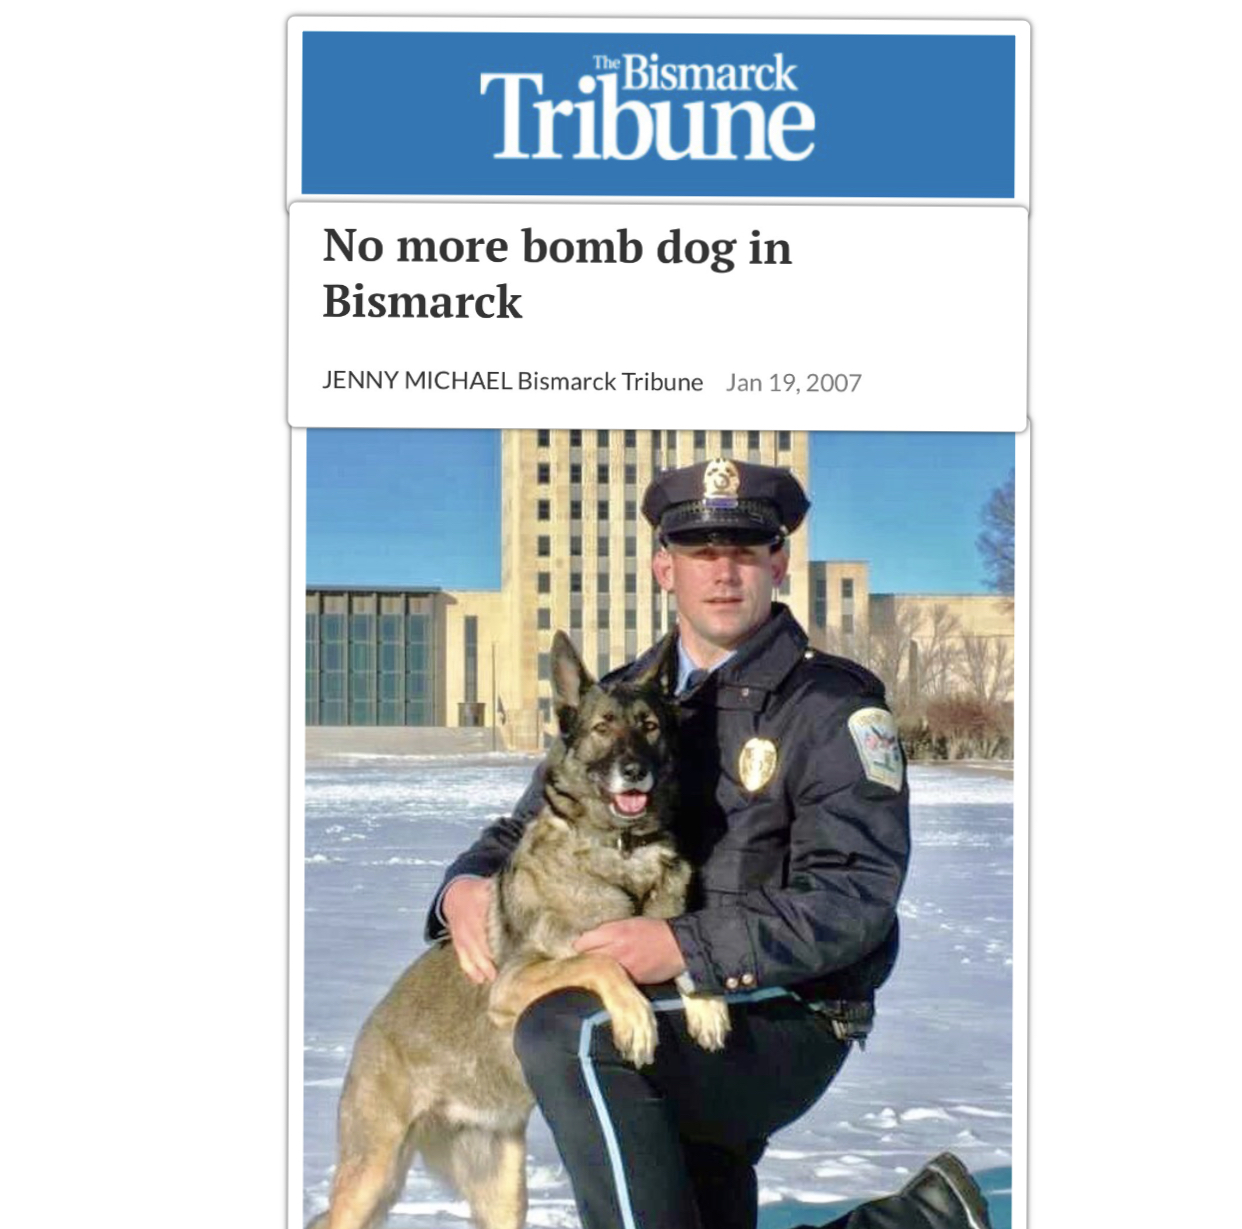 Bismarck Tribune - The Bismarck Police Department will now have to respond to situations where bombs could be involved without an explosive-detection dog.Bismarck Police Deputy Chief Keith Witt said Officer Daniel Hughes, who owned his explosive-detection dog, Annie Oakley, has resigned from the department.